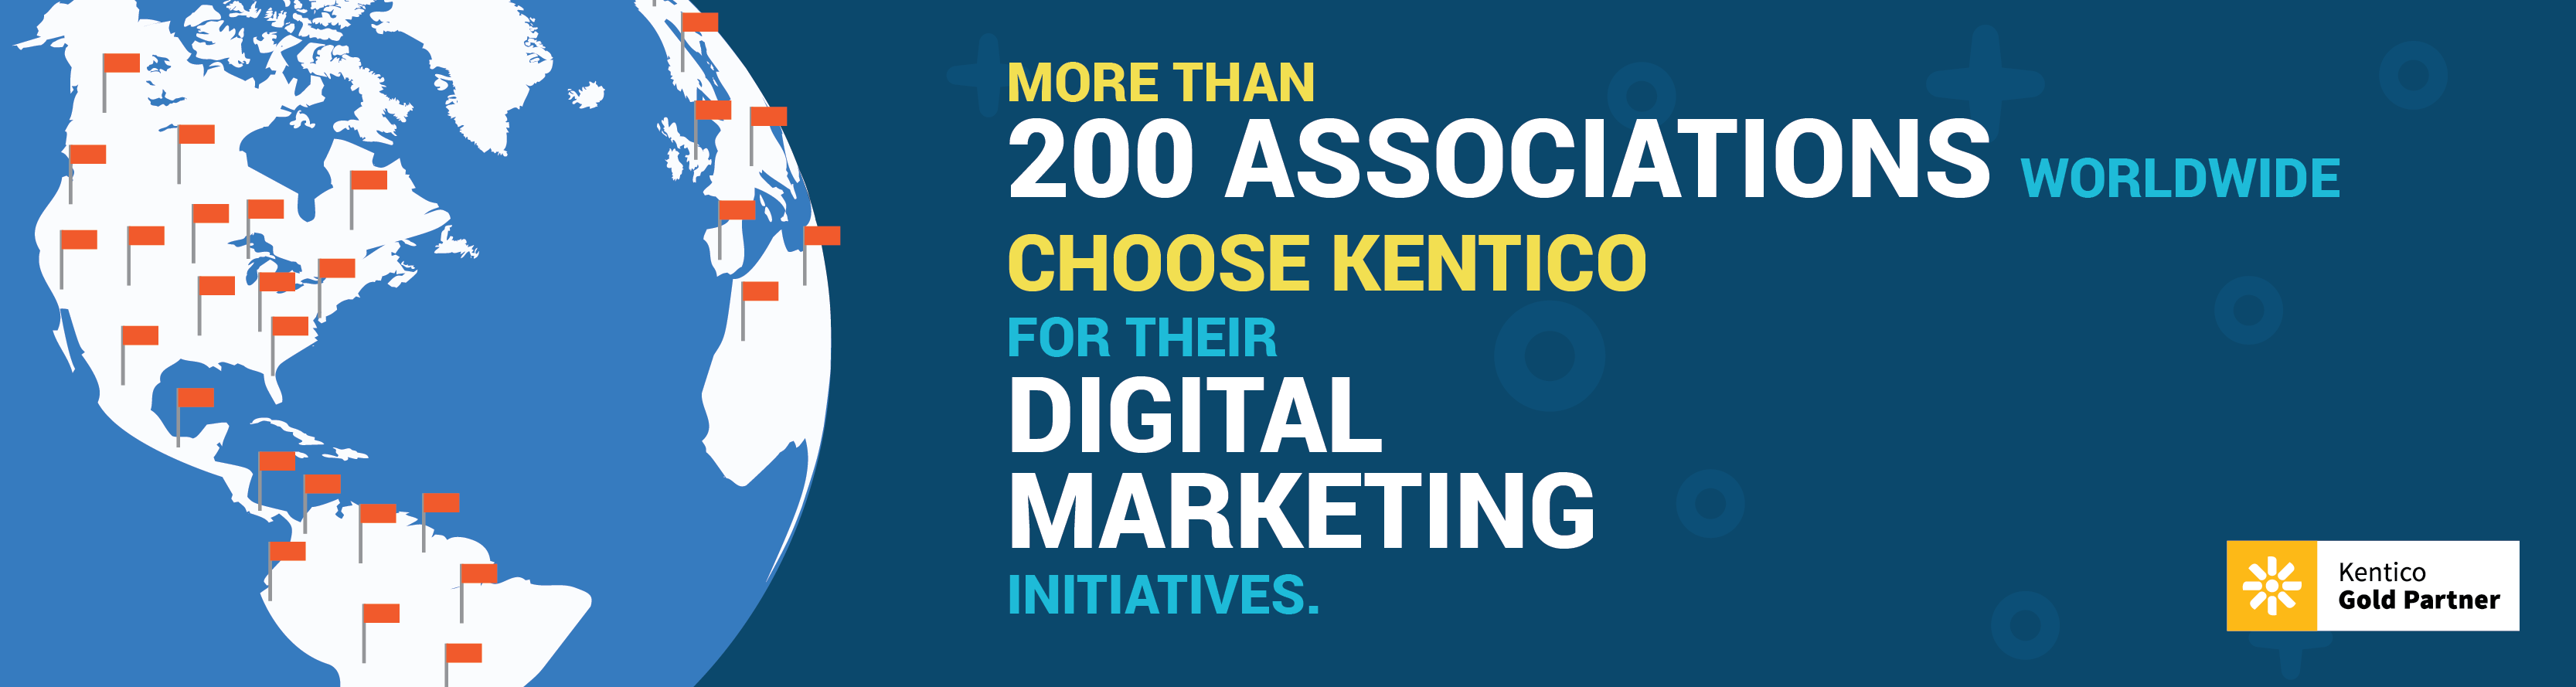 More than 200 associations worldwide choose Kentico for their digital marketing initiatives.